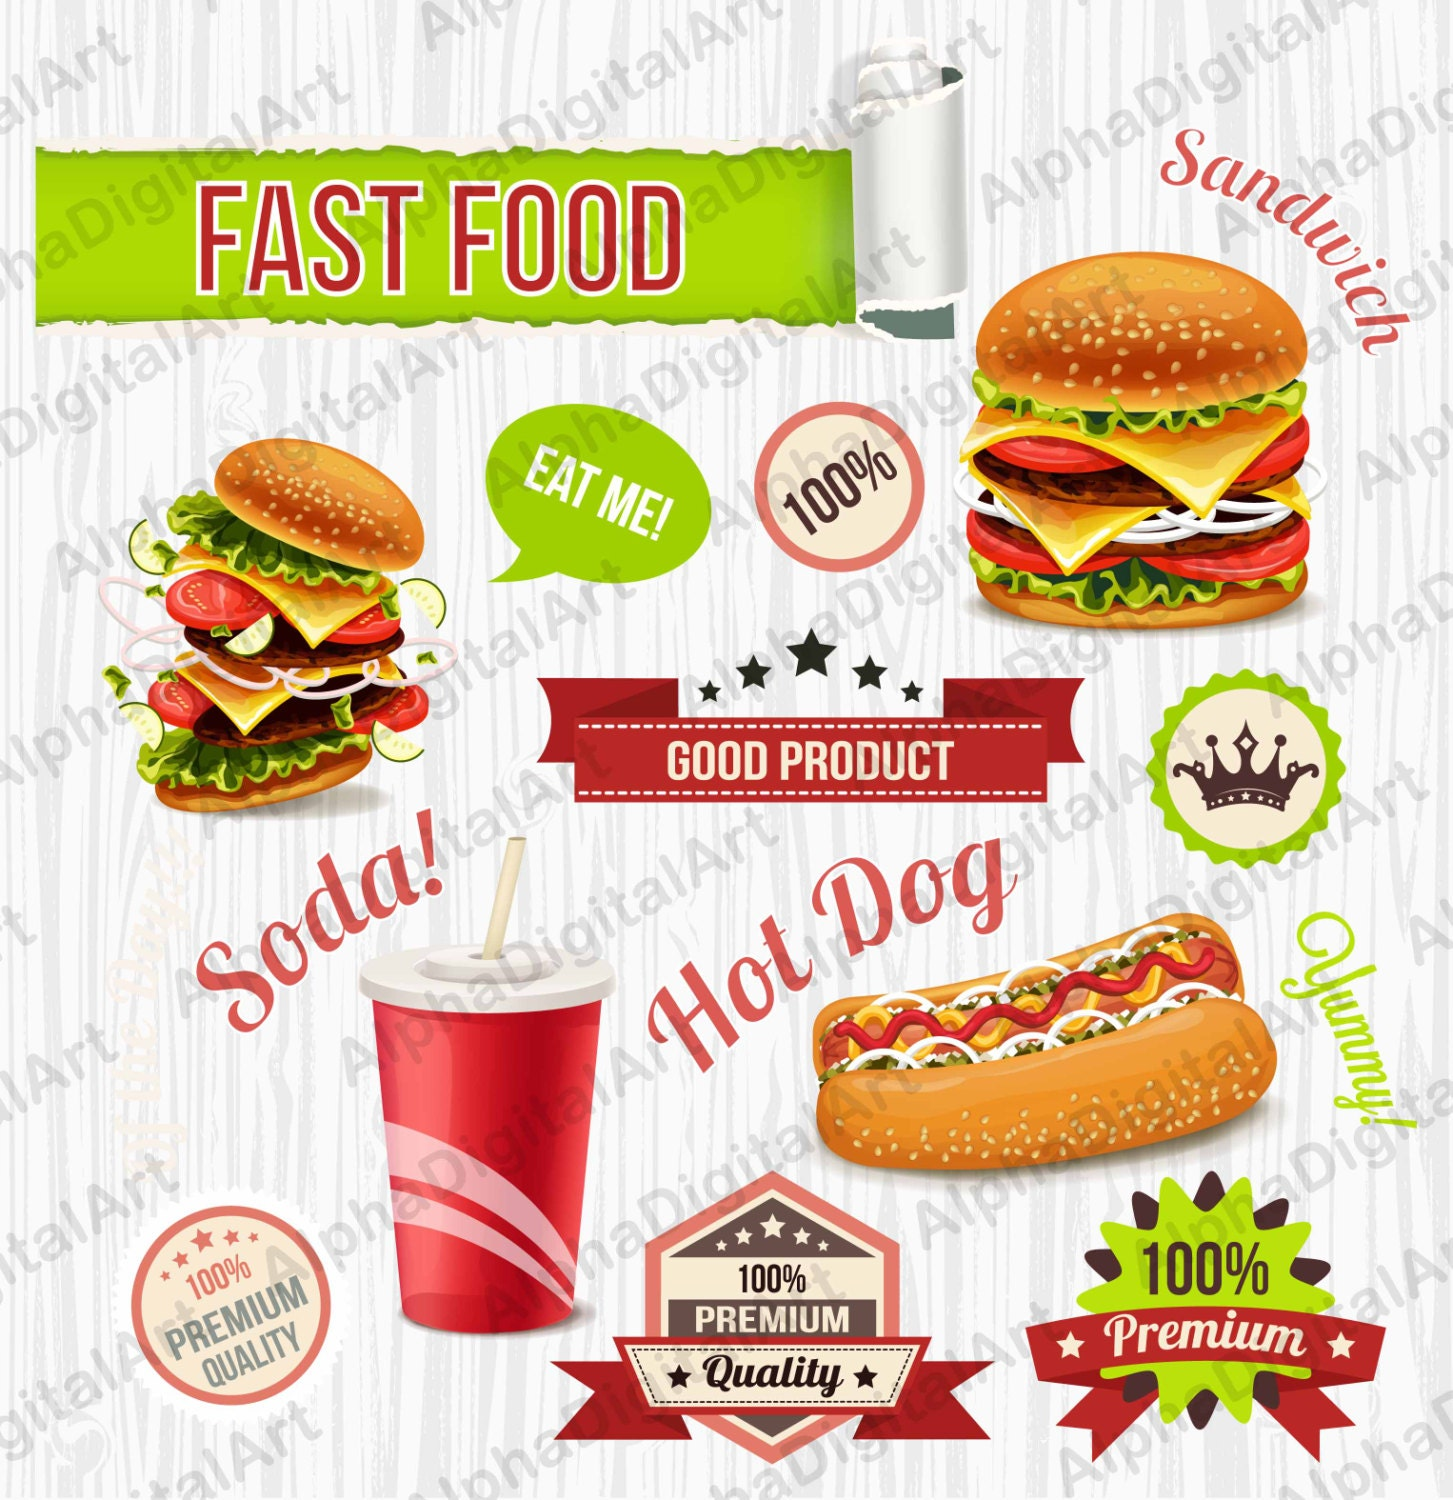 24 Fast Food clipart,Sandwich clipart,hot dog clipart,burger clipart ...